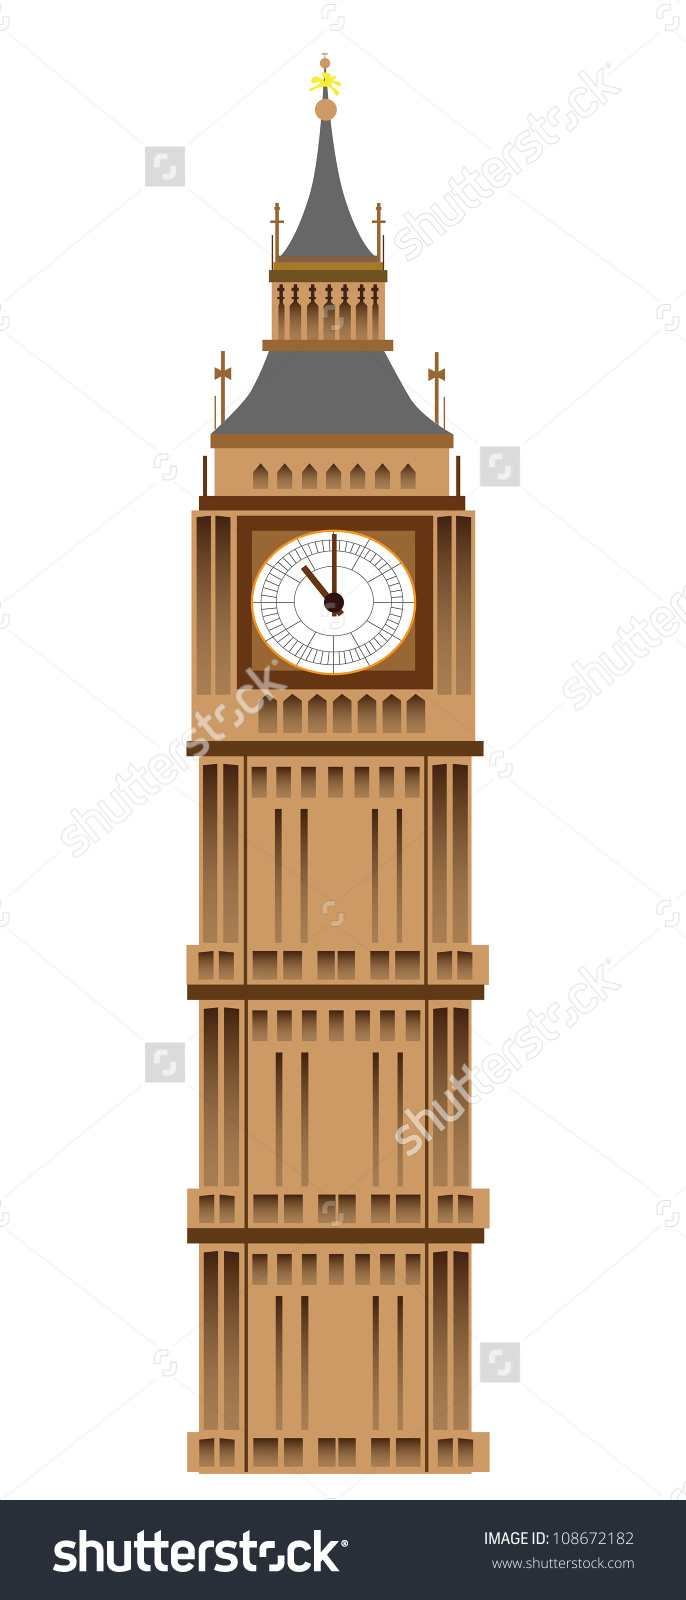 Big Ben Clipart - ClipArt Best. Save to a lightbox